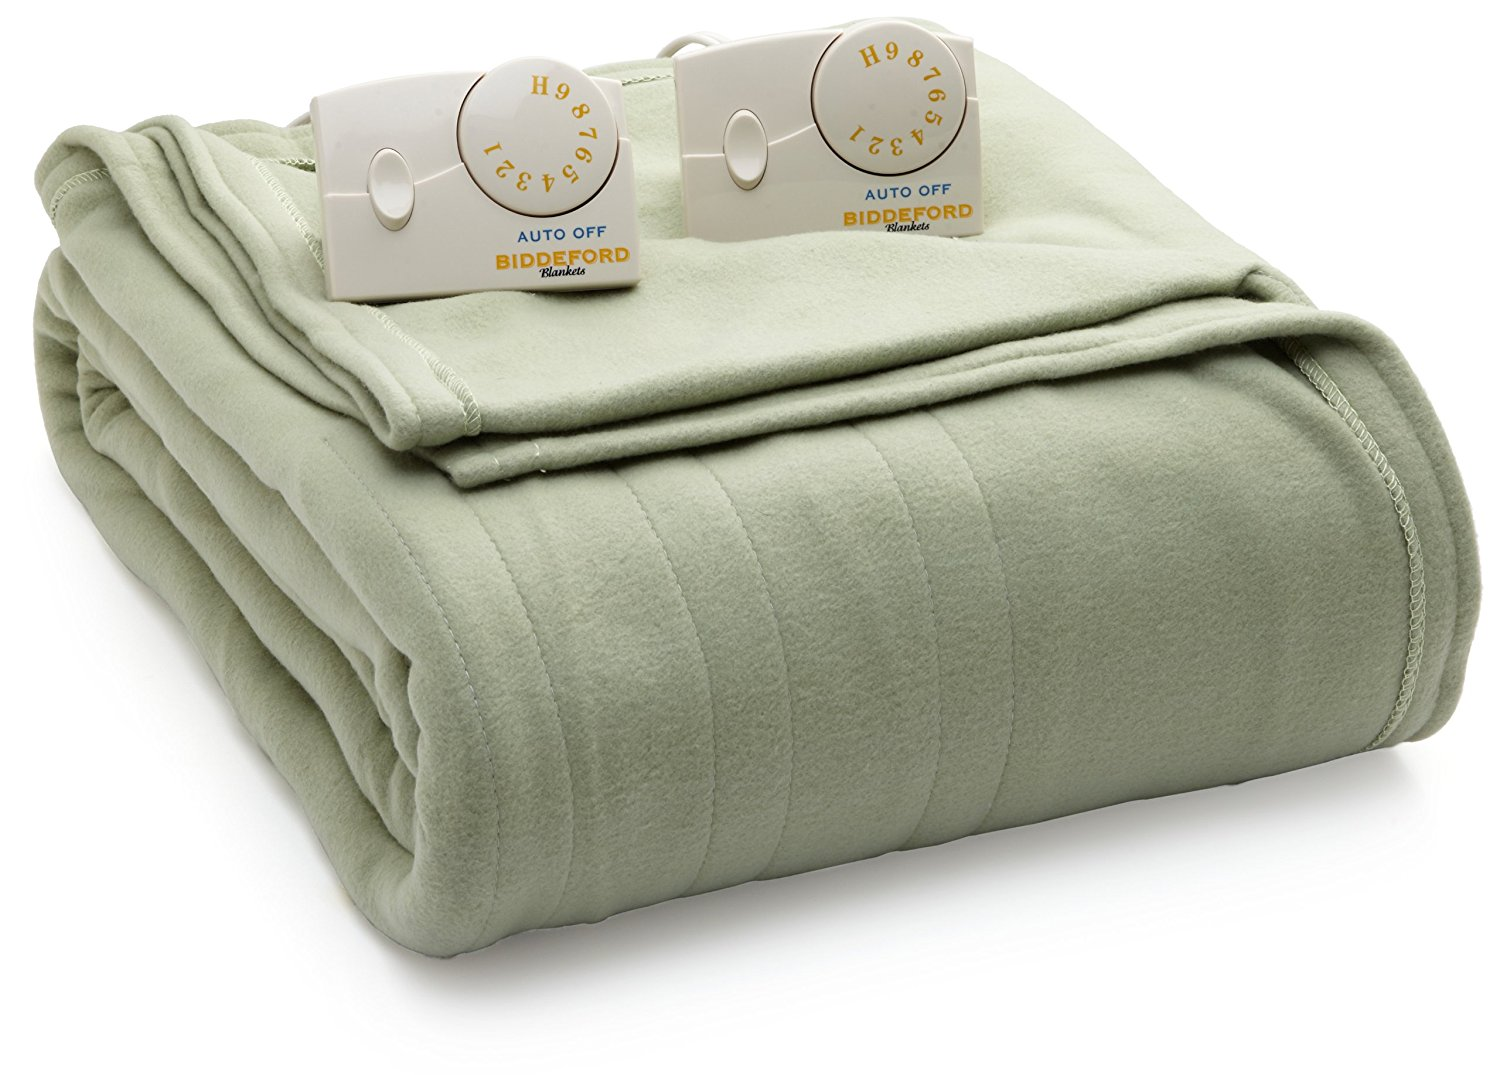 8. Biddeford Blankets Comfort Knit Heated Blanket